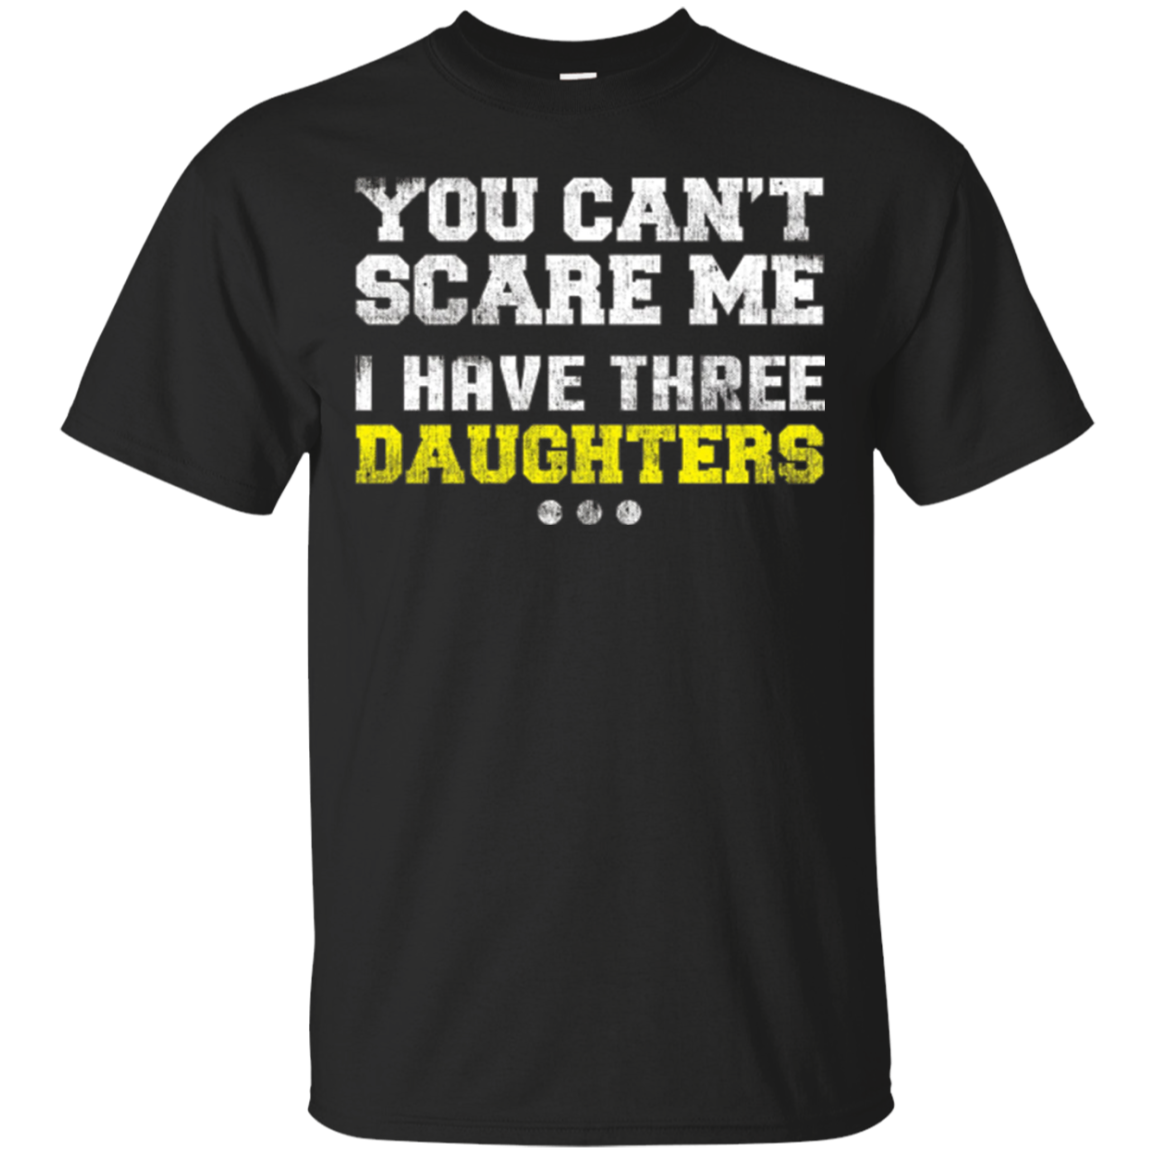 Dad And Daughter Shirts - You Can't Scare Me Xmas T-Shirts